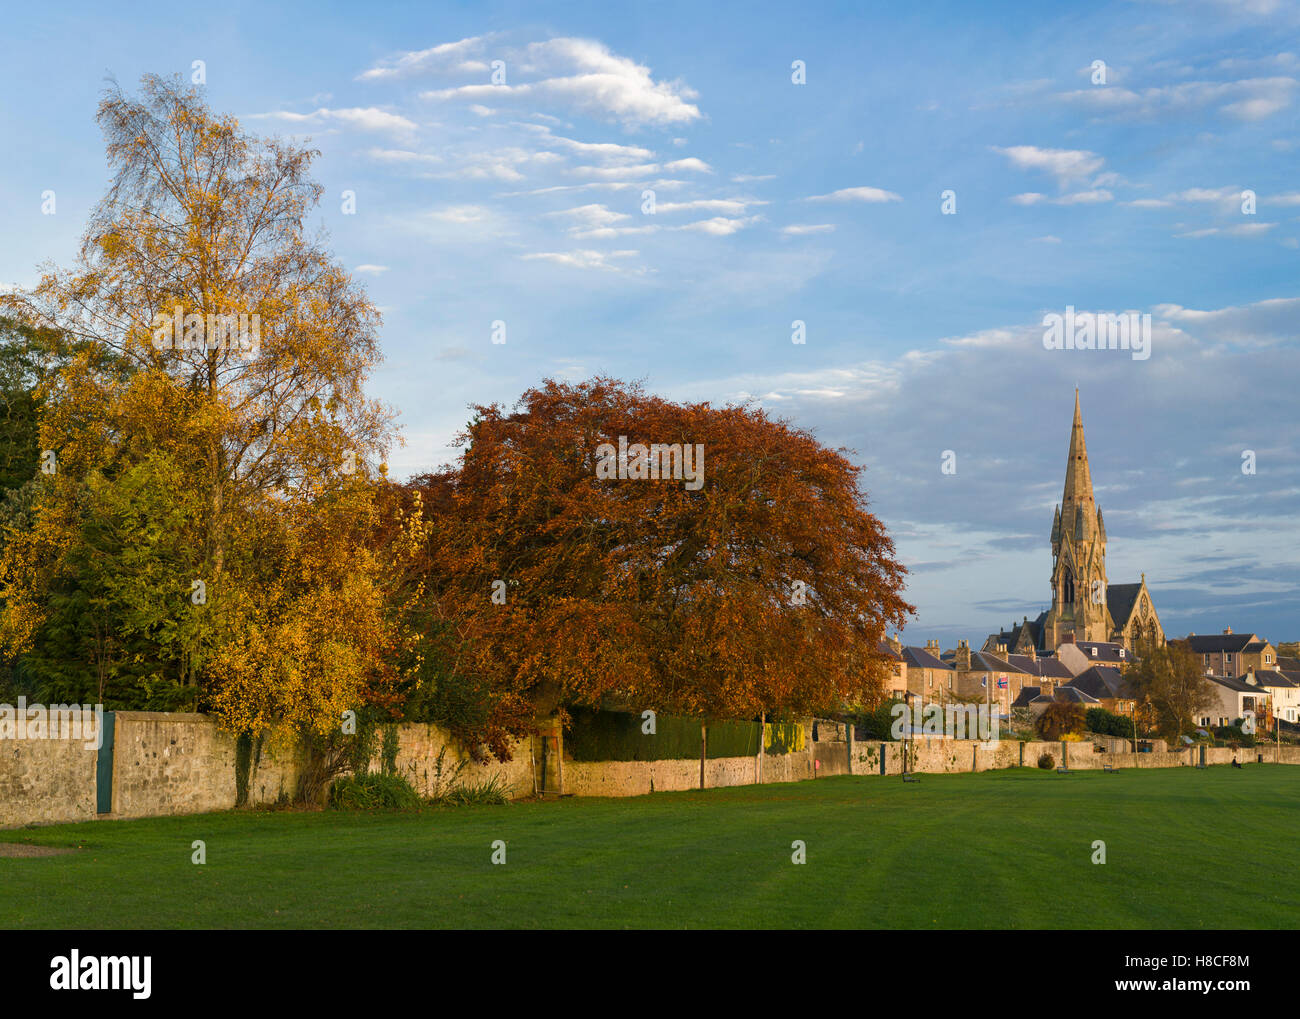 The Cobby Tweed riverside walk in Kelso, Scotland, with autumn colours. - Stock Image